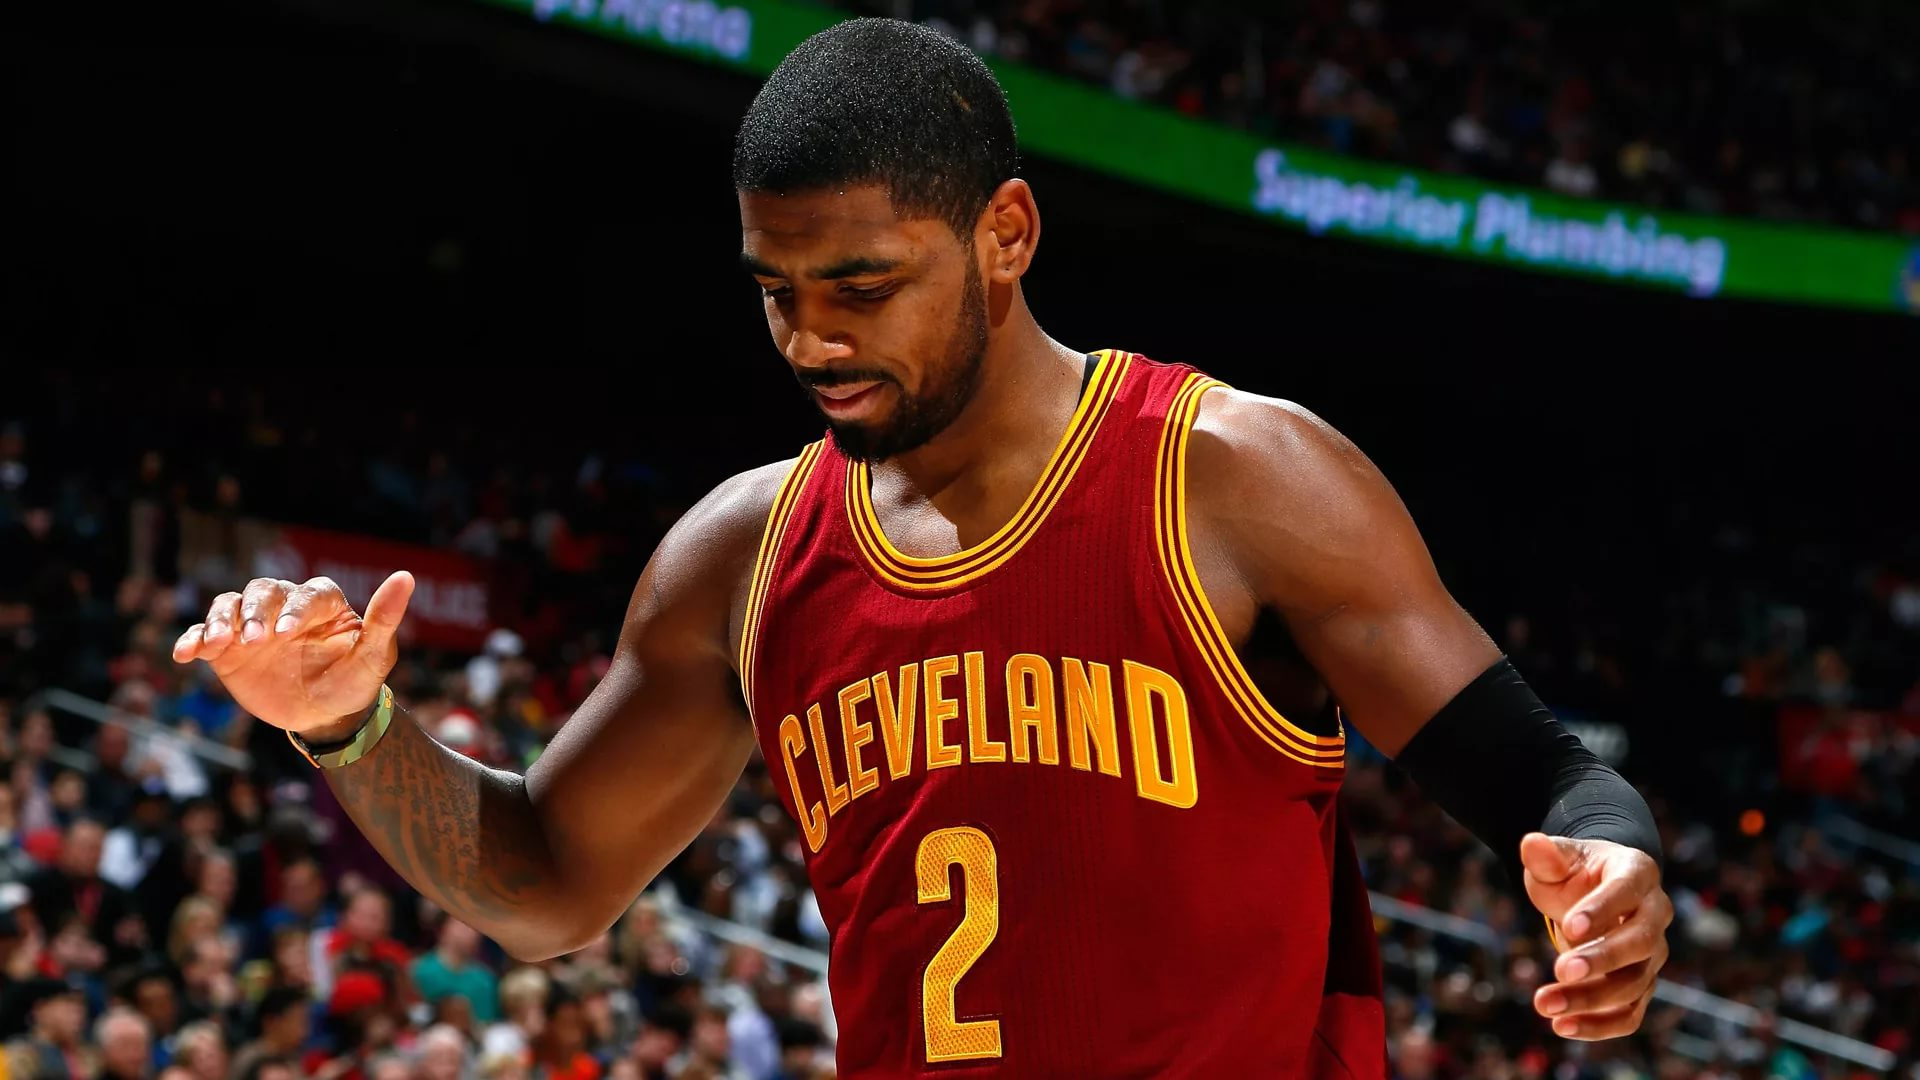 Kyrie Irving Wallpapers Hd - Cavs , HD Wallpaper & Backgrounds